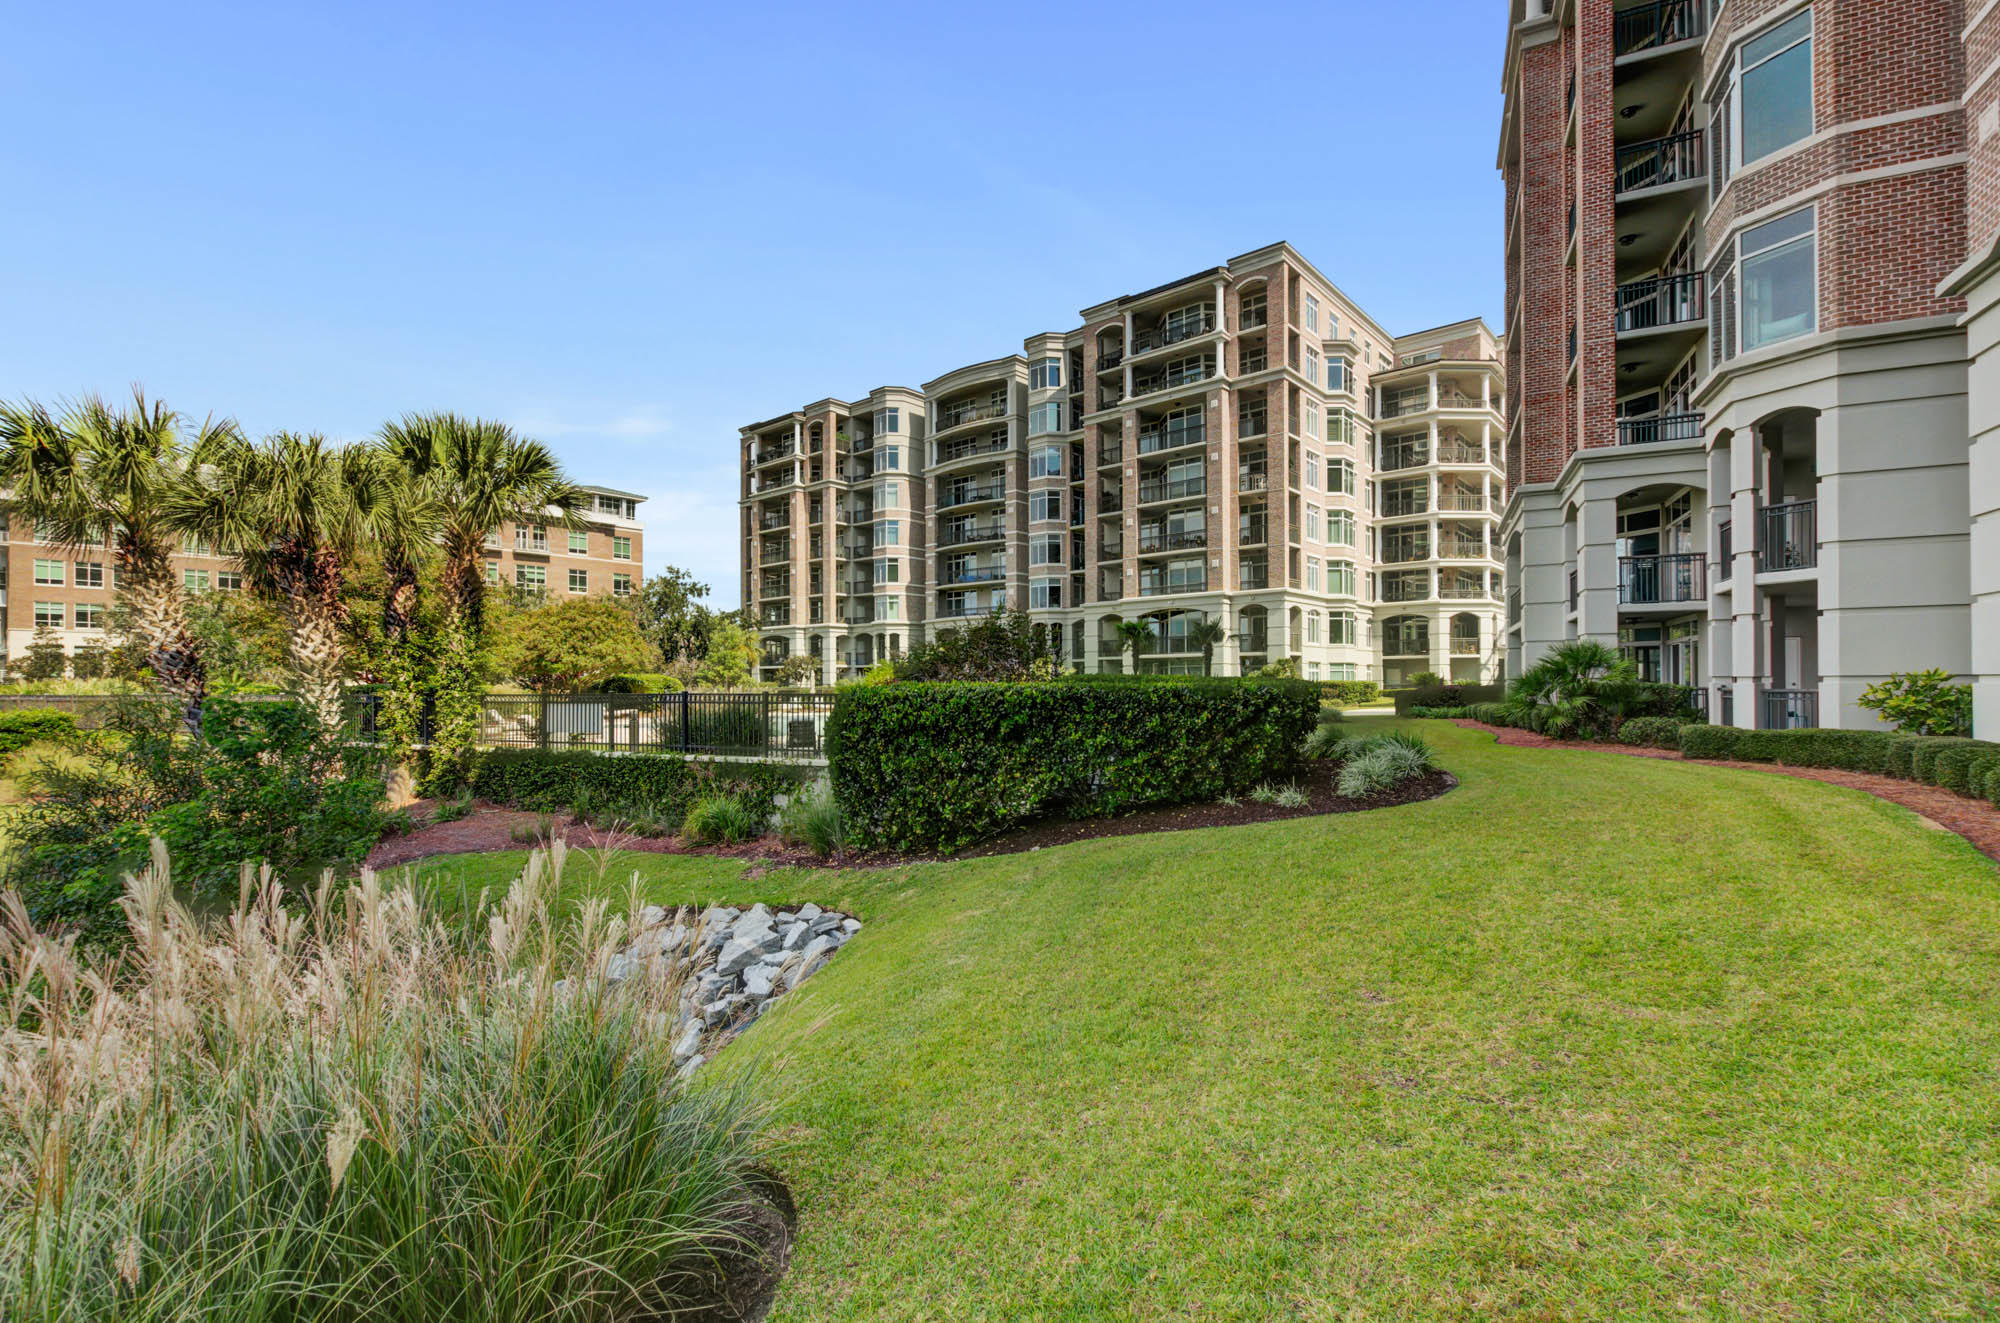 Renaissance On Chas Harbor Homes For Sale - 231 South Plaza, Mount Pleasant, SC - 5